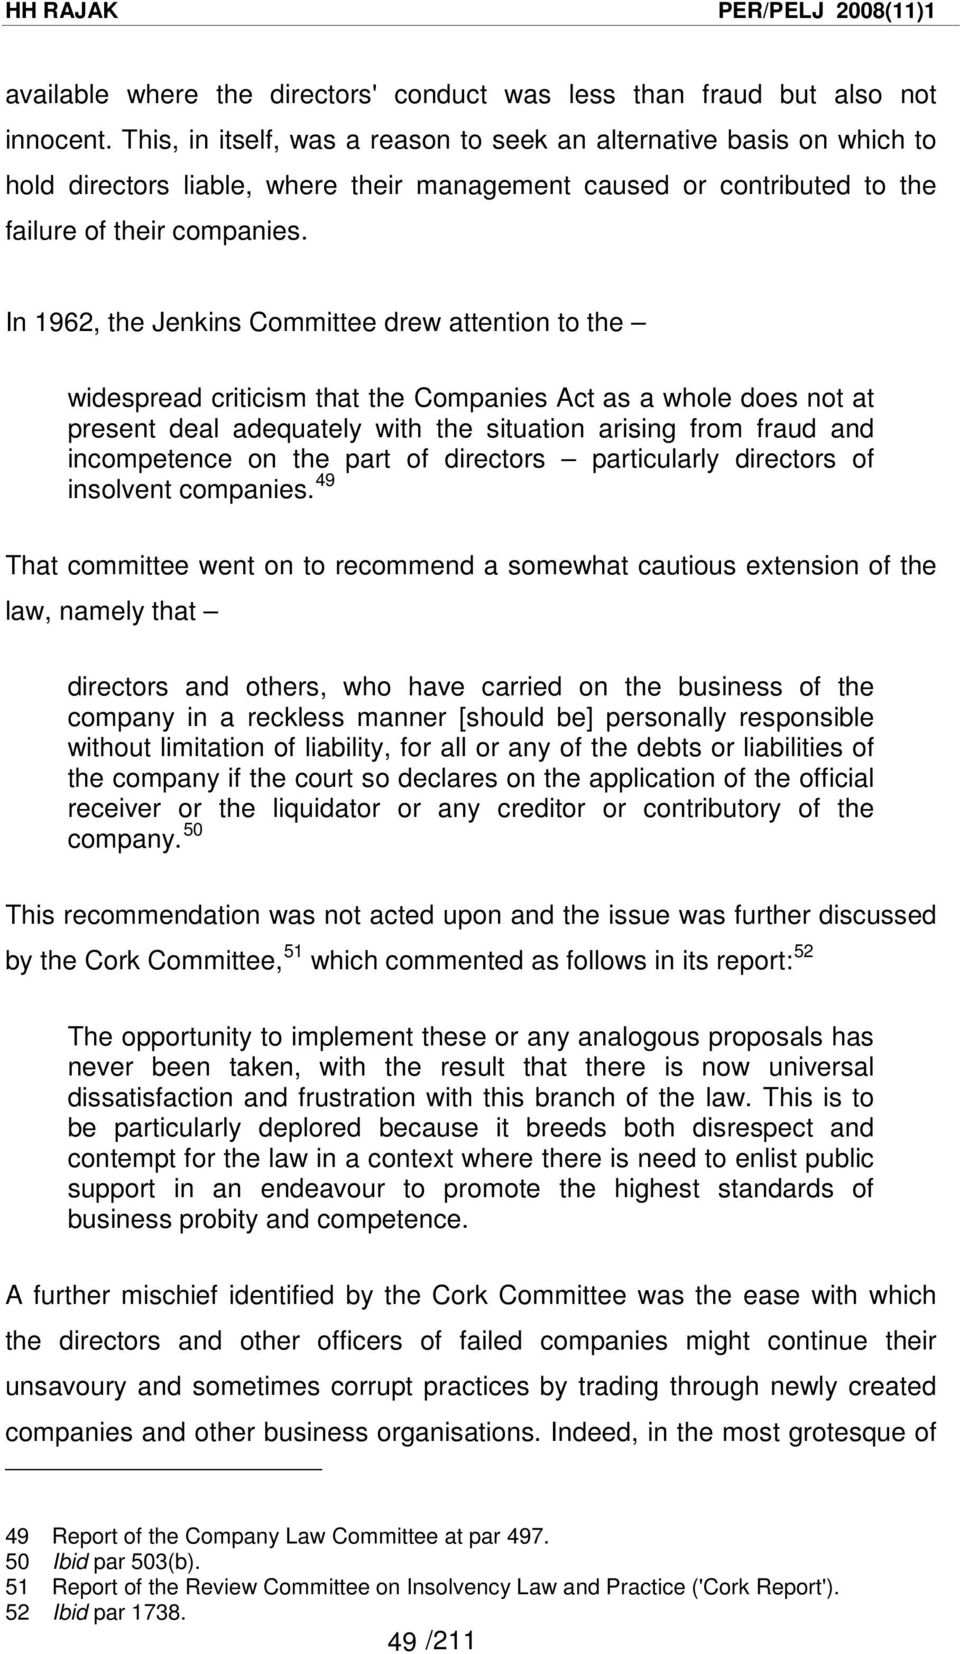 In 1962, the Jenkins Committee drew attention to the widespread criticism that the Companies Act as a whole does not at present deal adequately with the situation arising from fraud and incompetence